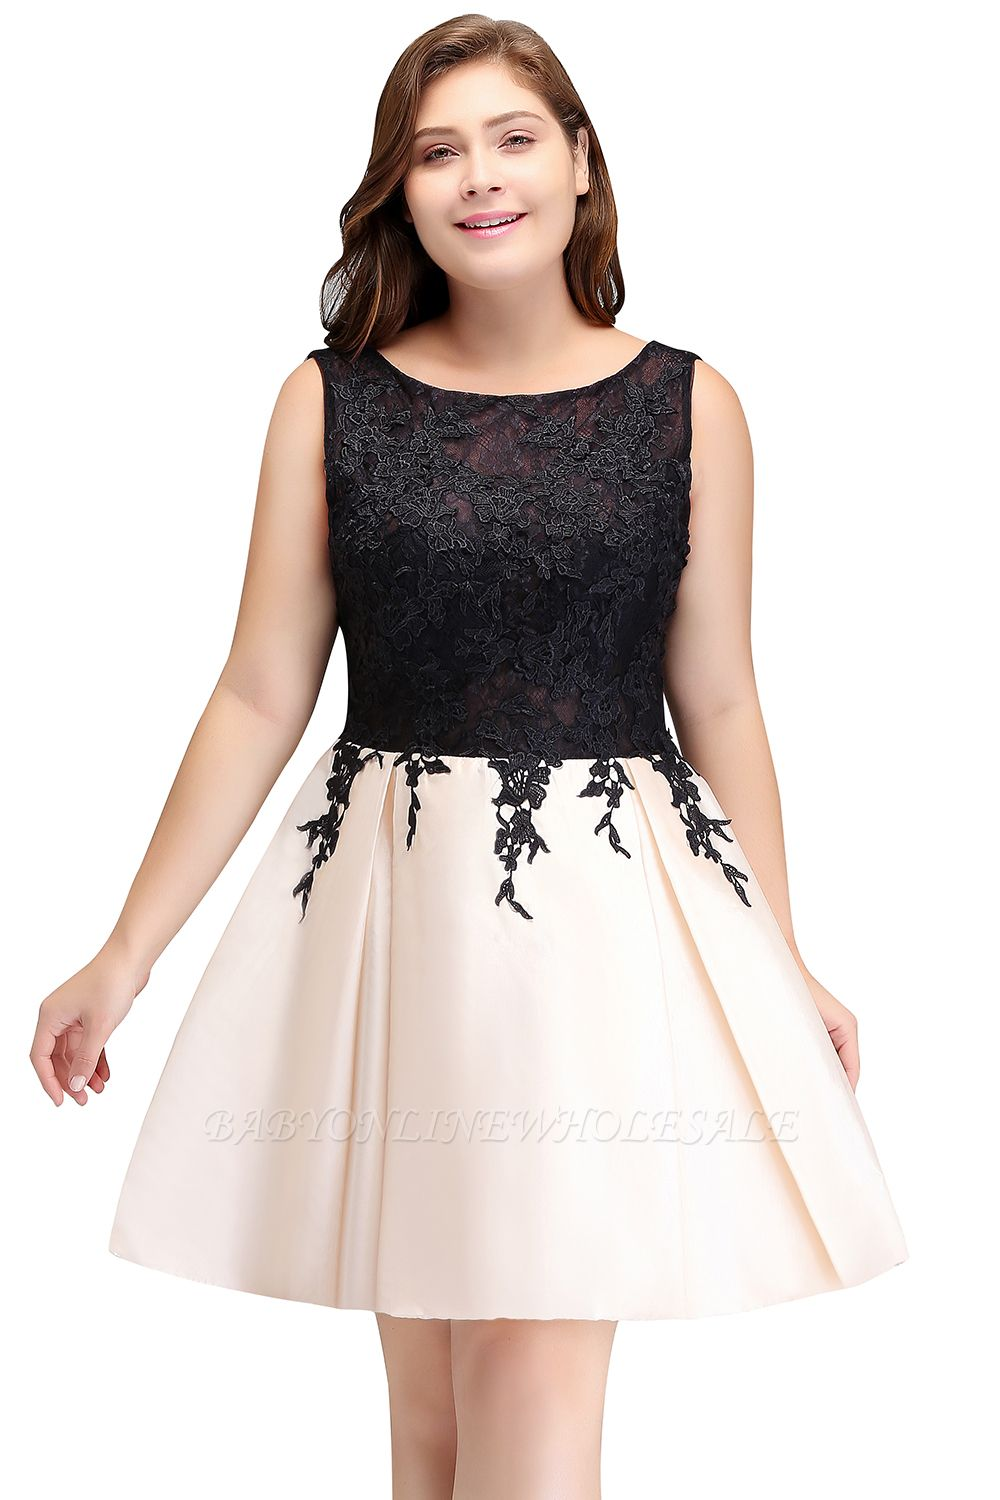 ISABELLA | A-Line Scoop Short Sleeveless Plus size Homecoming Dresses with Appliques